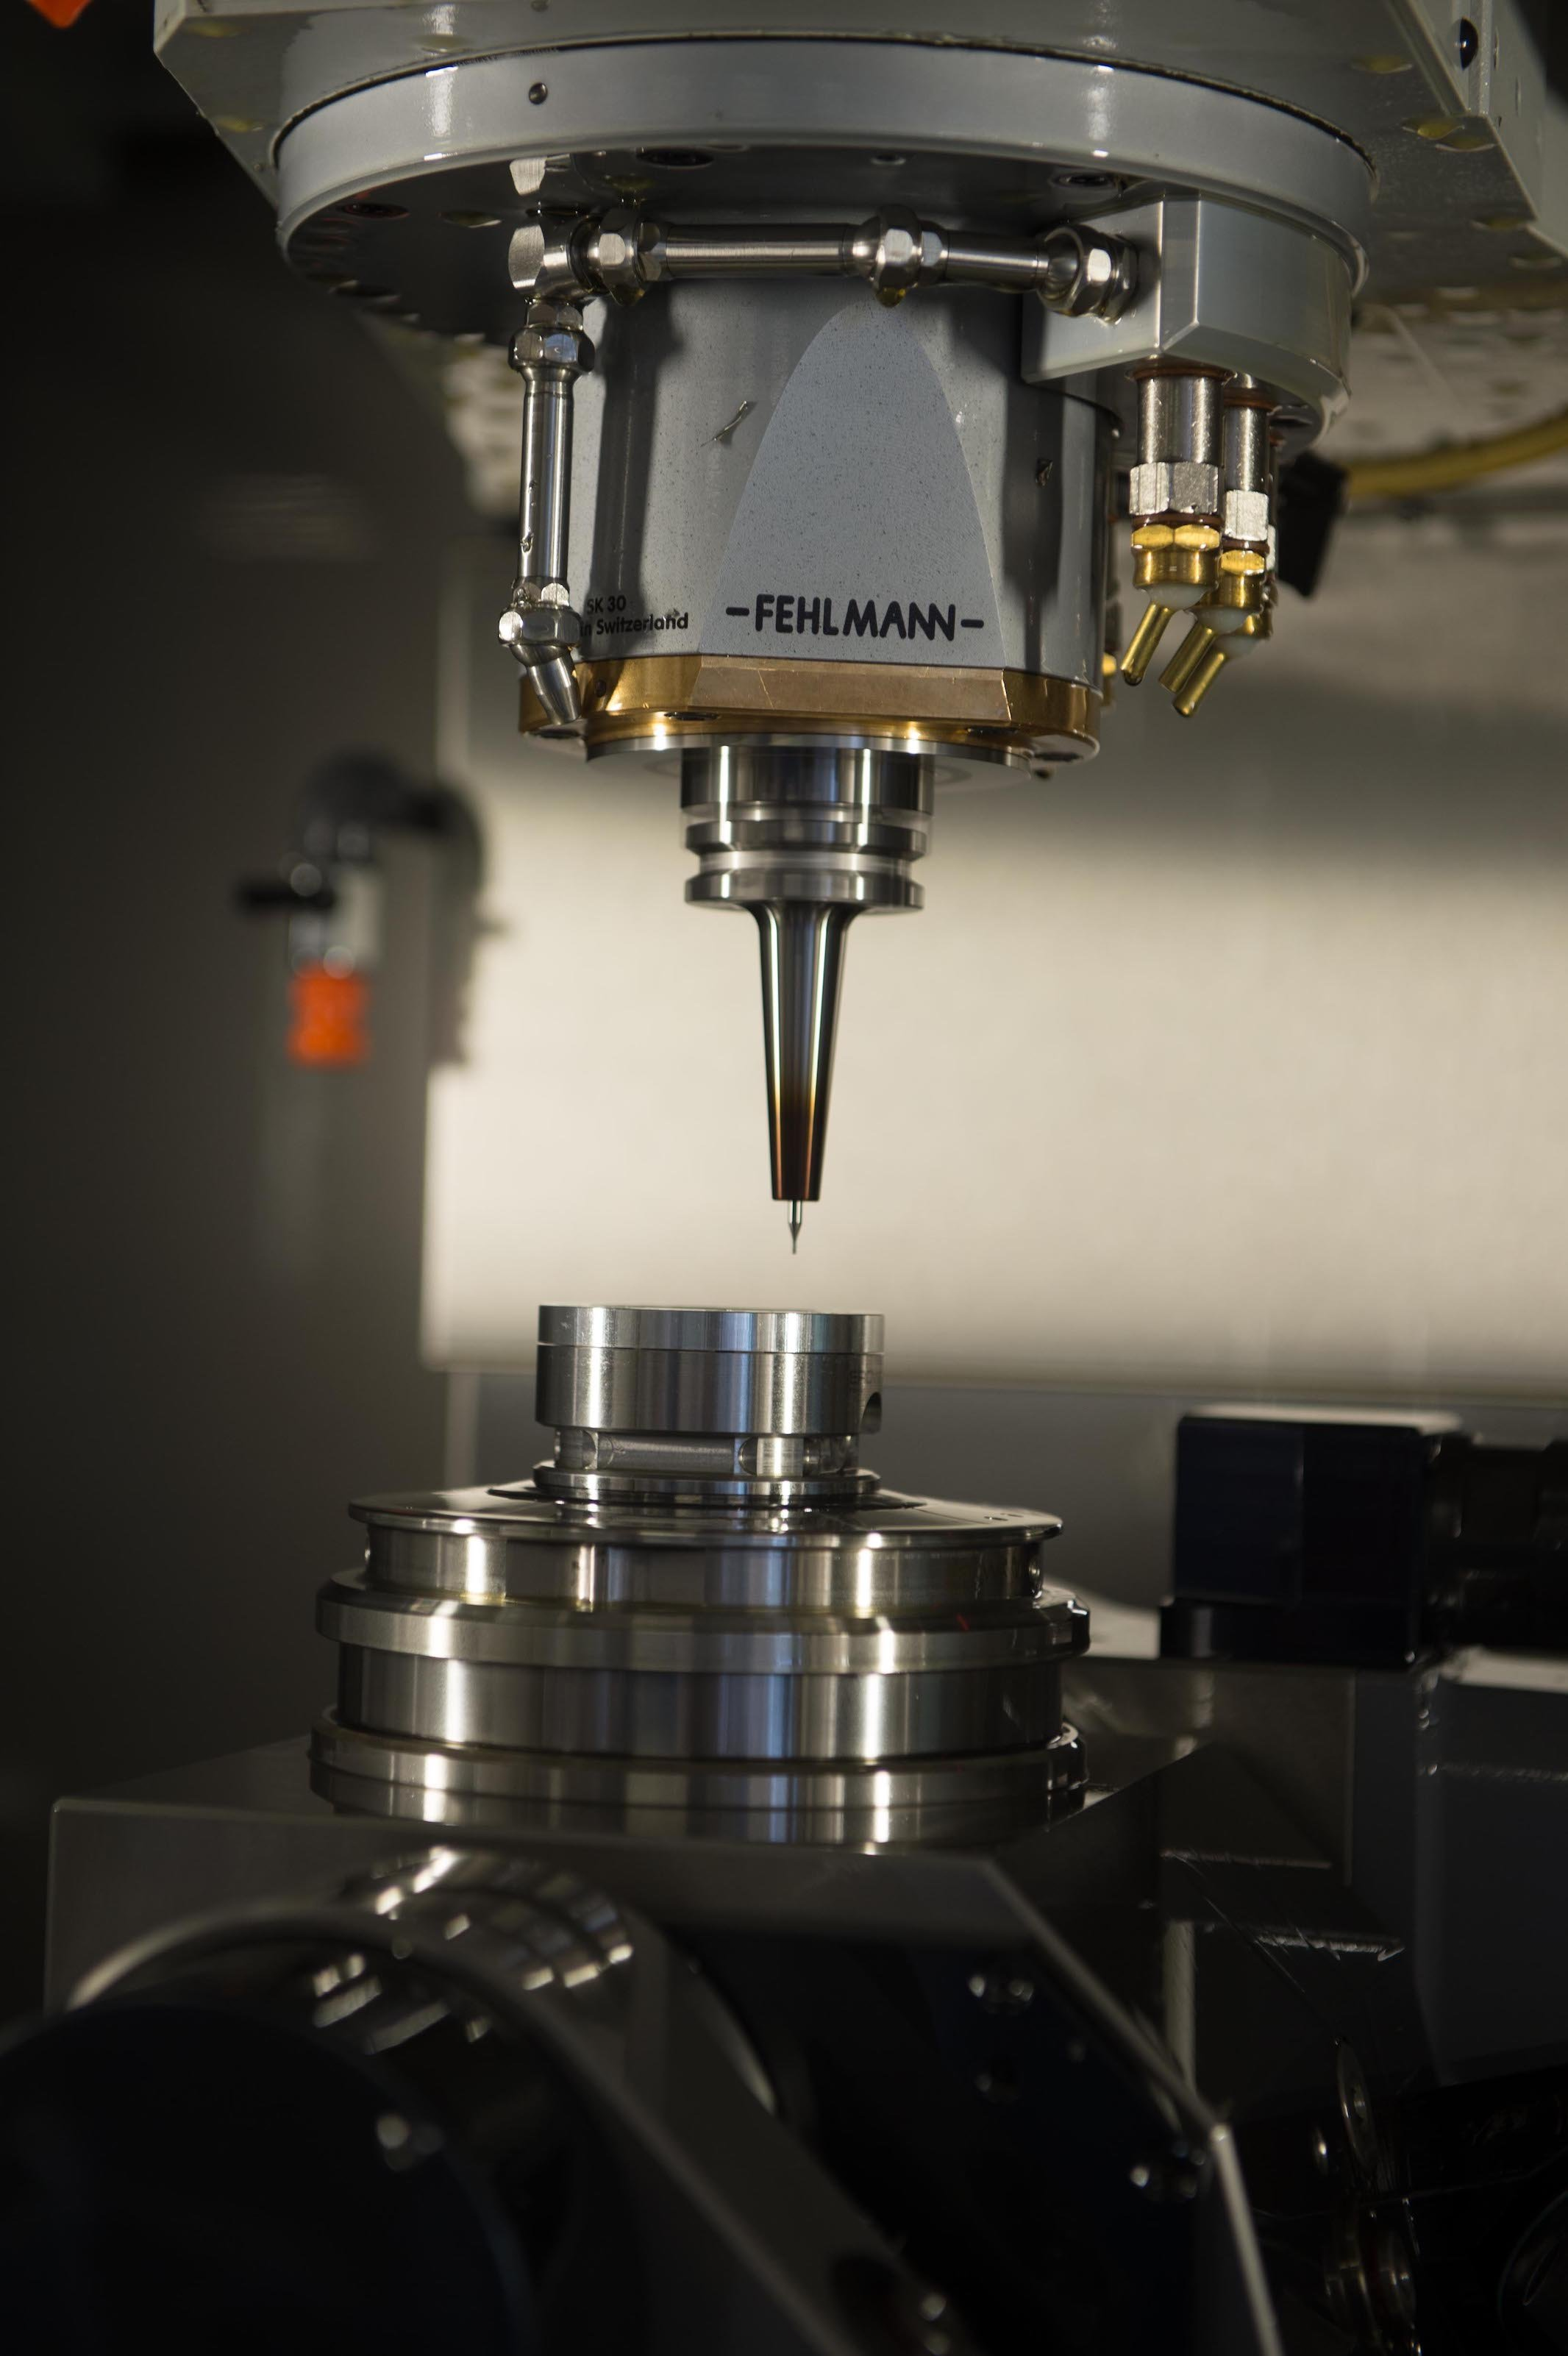 The production of the parts for the perpetual calendar requires precision tools with a diameter of as little as 0.2mm.